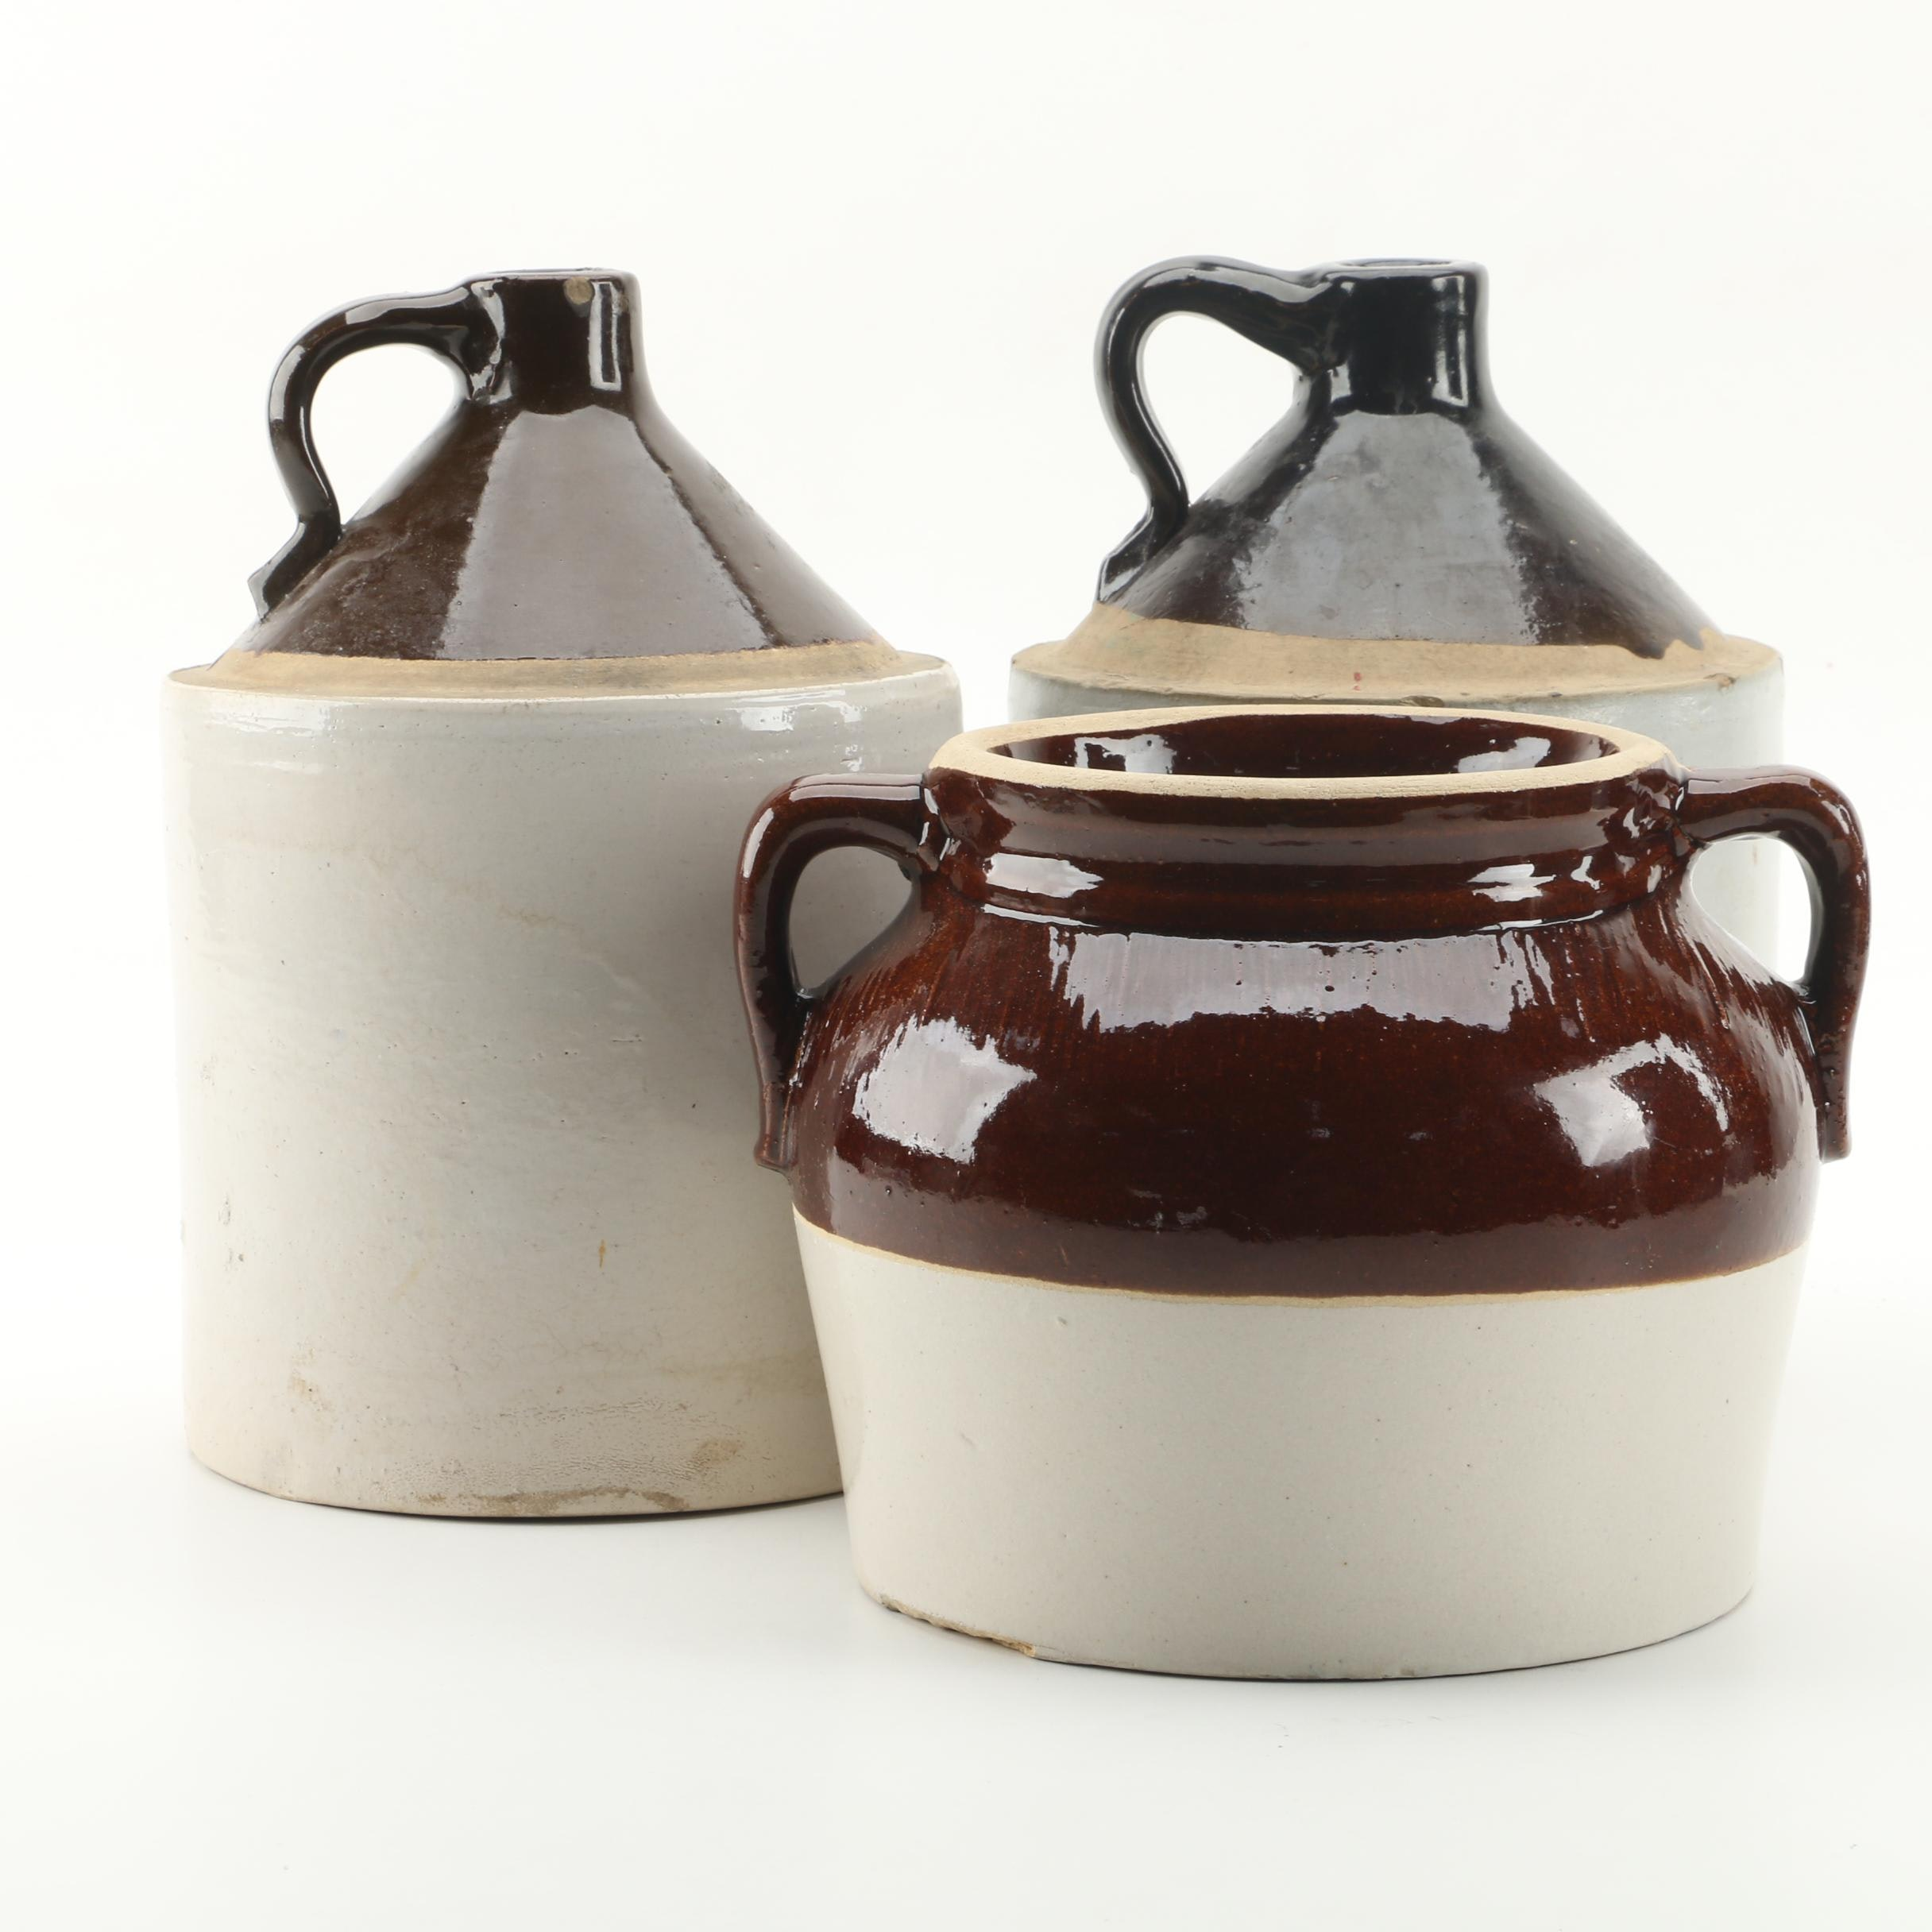 Vintage Stoneware Jugs and Robinson Ransbottom Four Quart Bean Pot